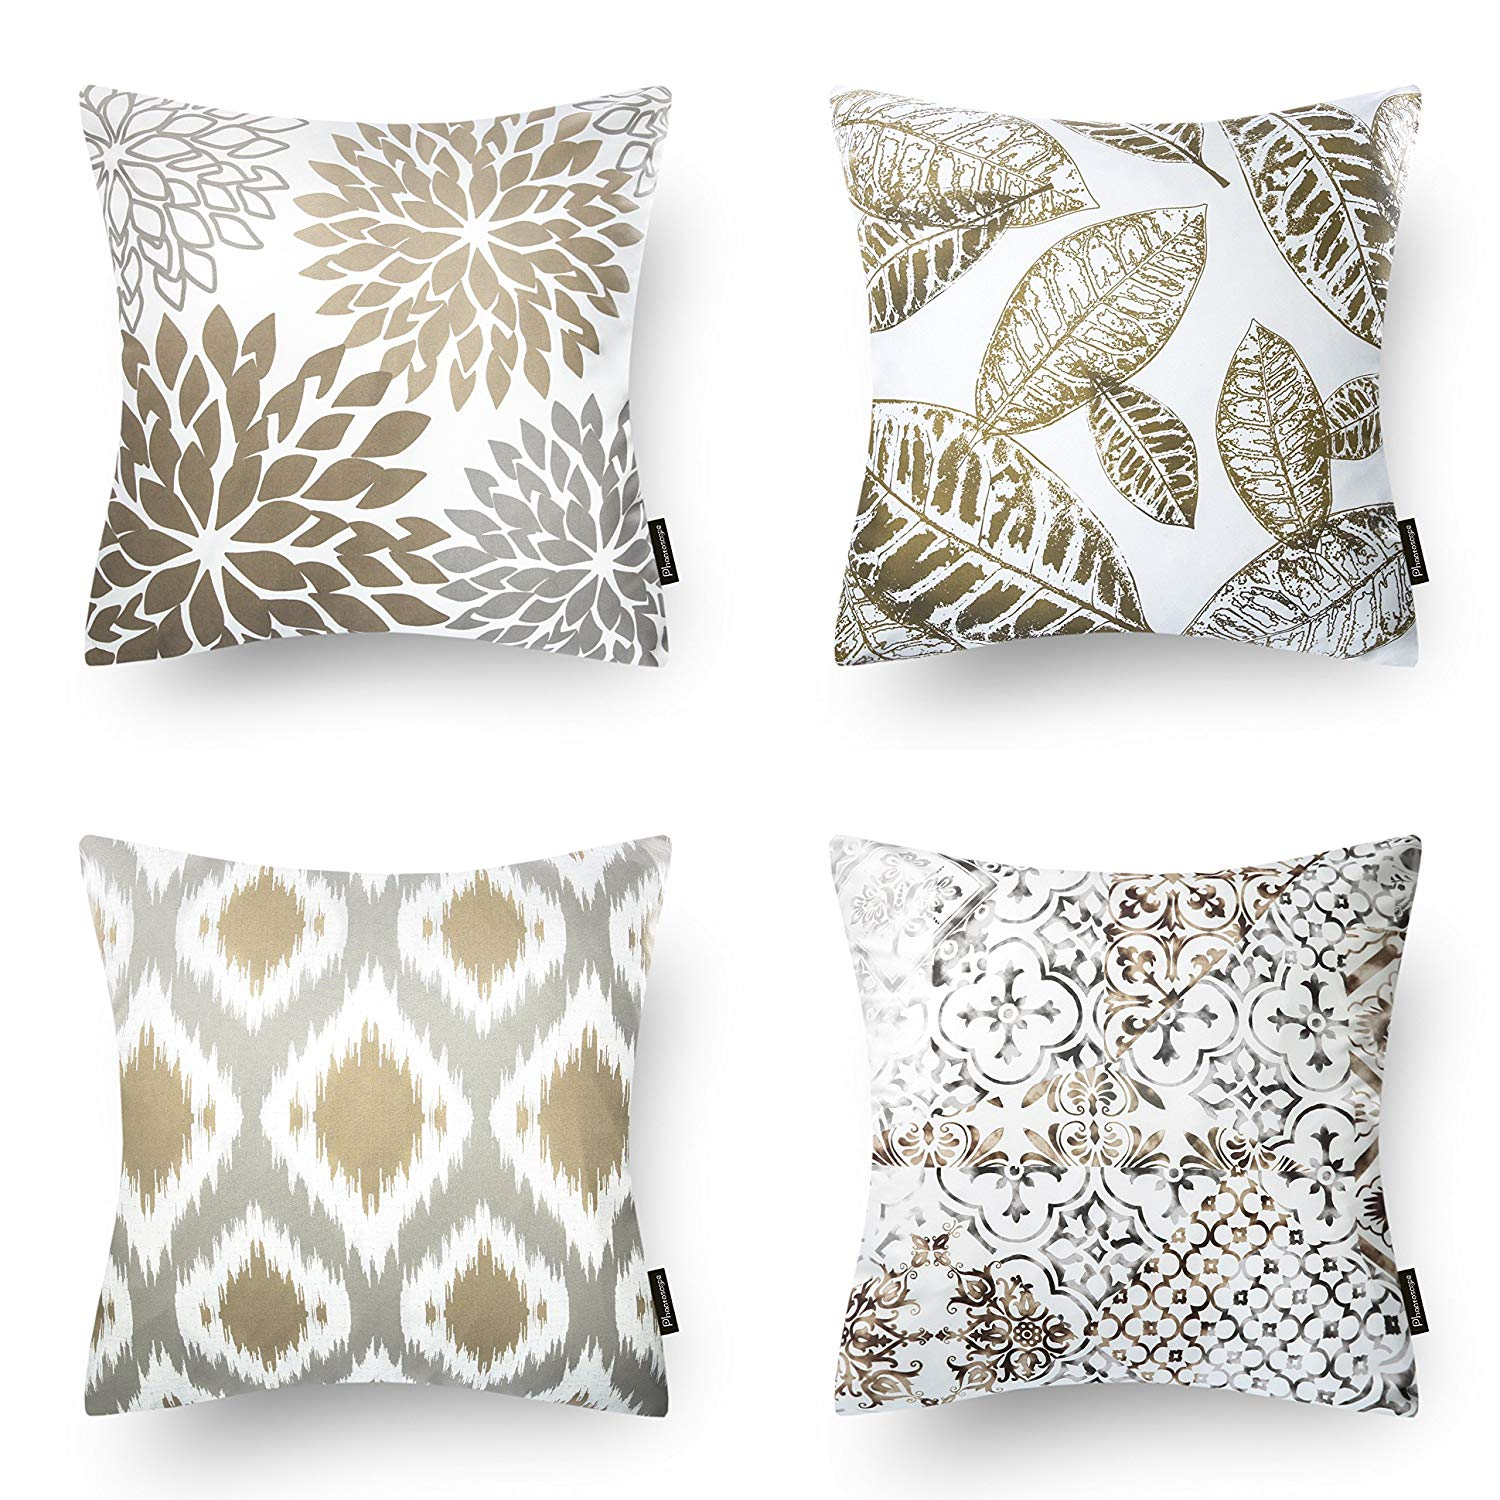 Set of 4 Phantoscope Throw pillow covers New Home Living Coffee Color Decorative Throw Pillow Case Cushion Covers Set of 4 (Pillow Covers Only)